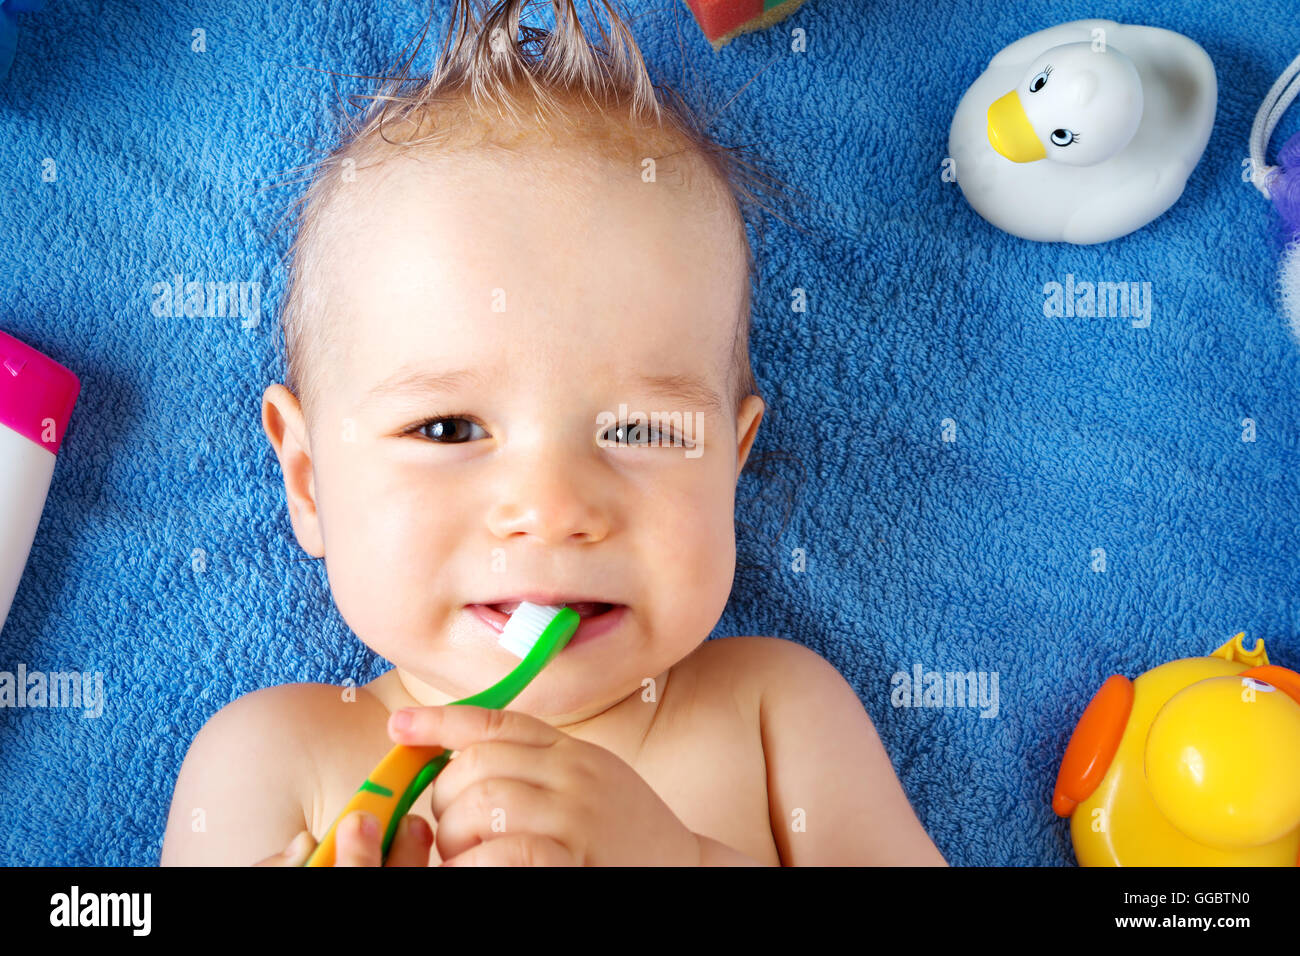 Baby lying on towel with washing tools Stock Photo: 113357580 - Alamy